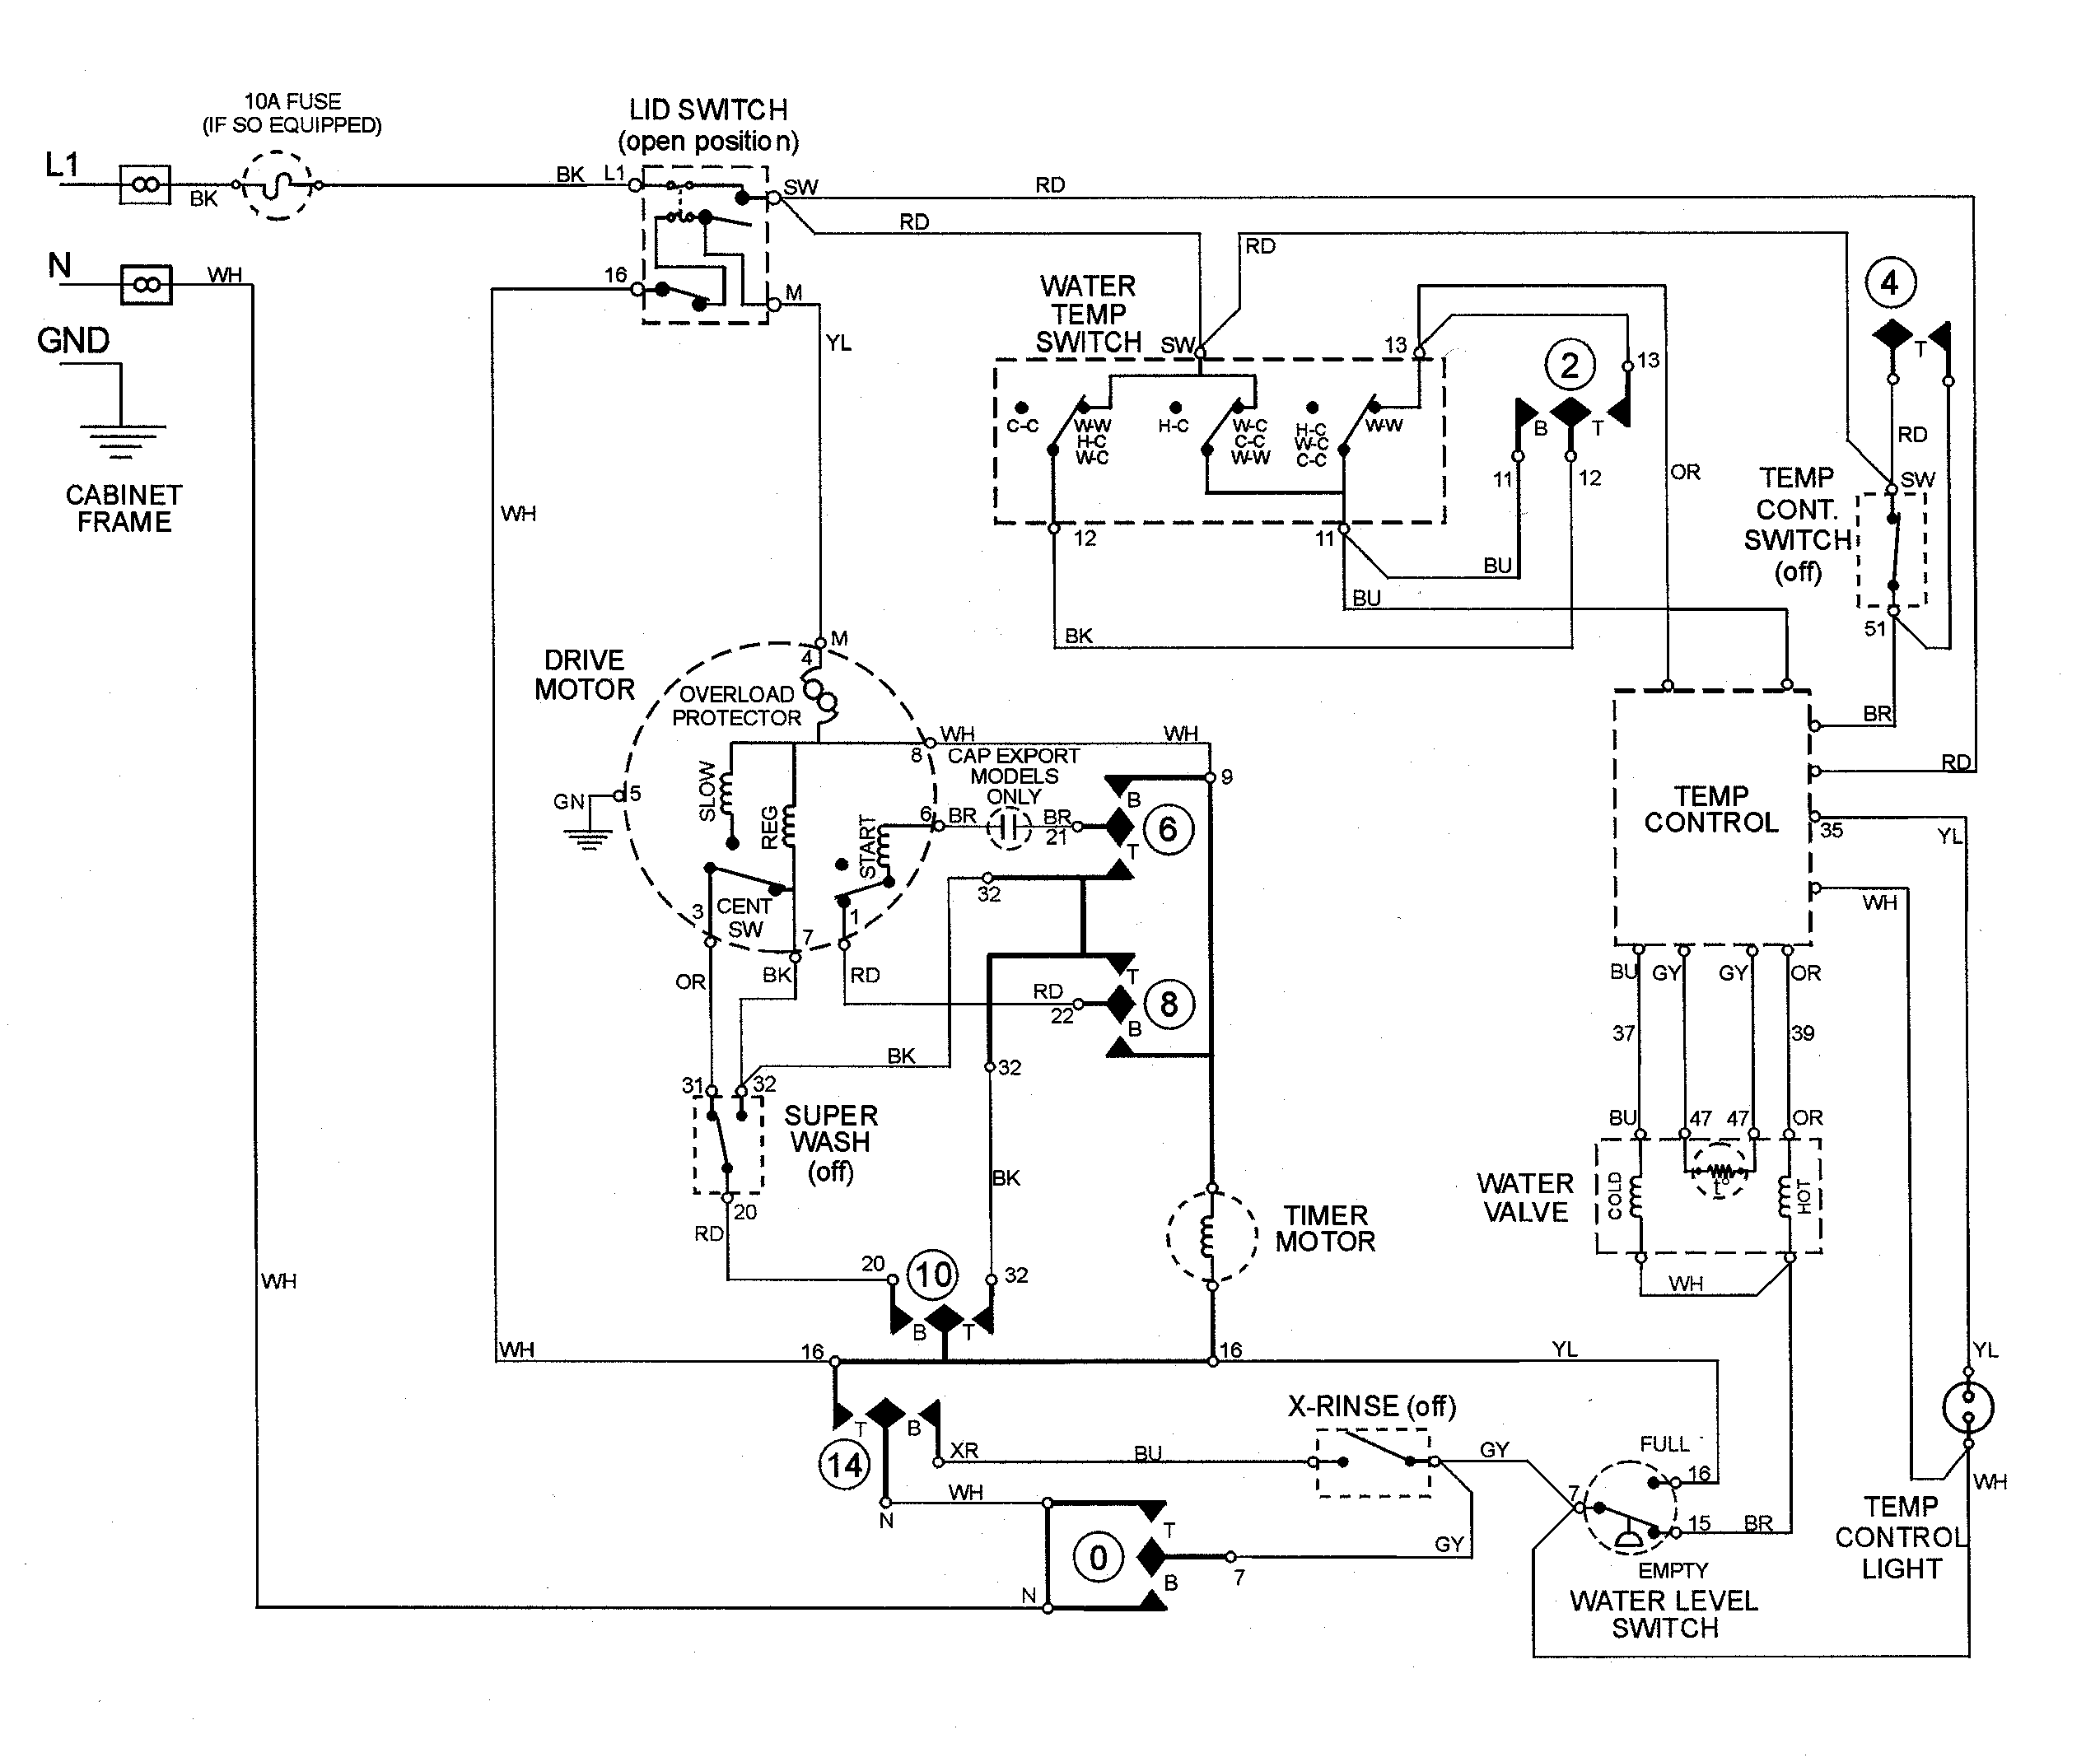 Ge Motor Wiring Schematic - westinghouse fan motor wiring ... on